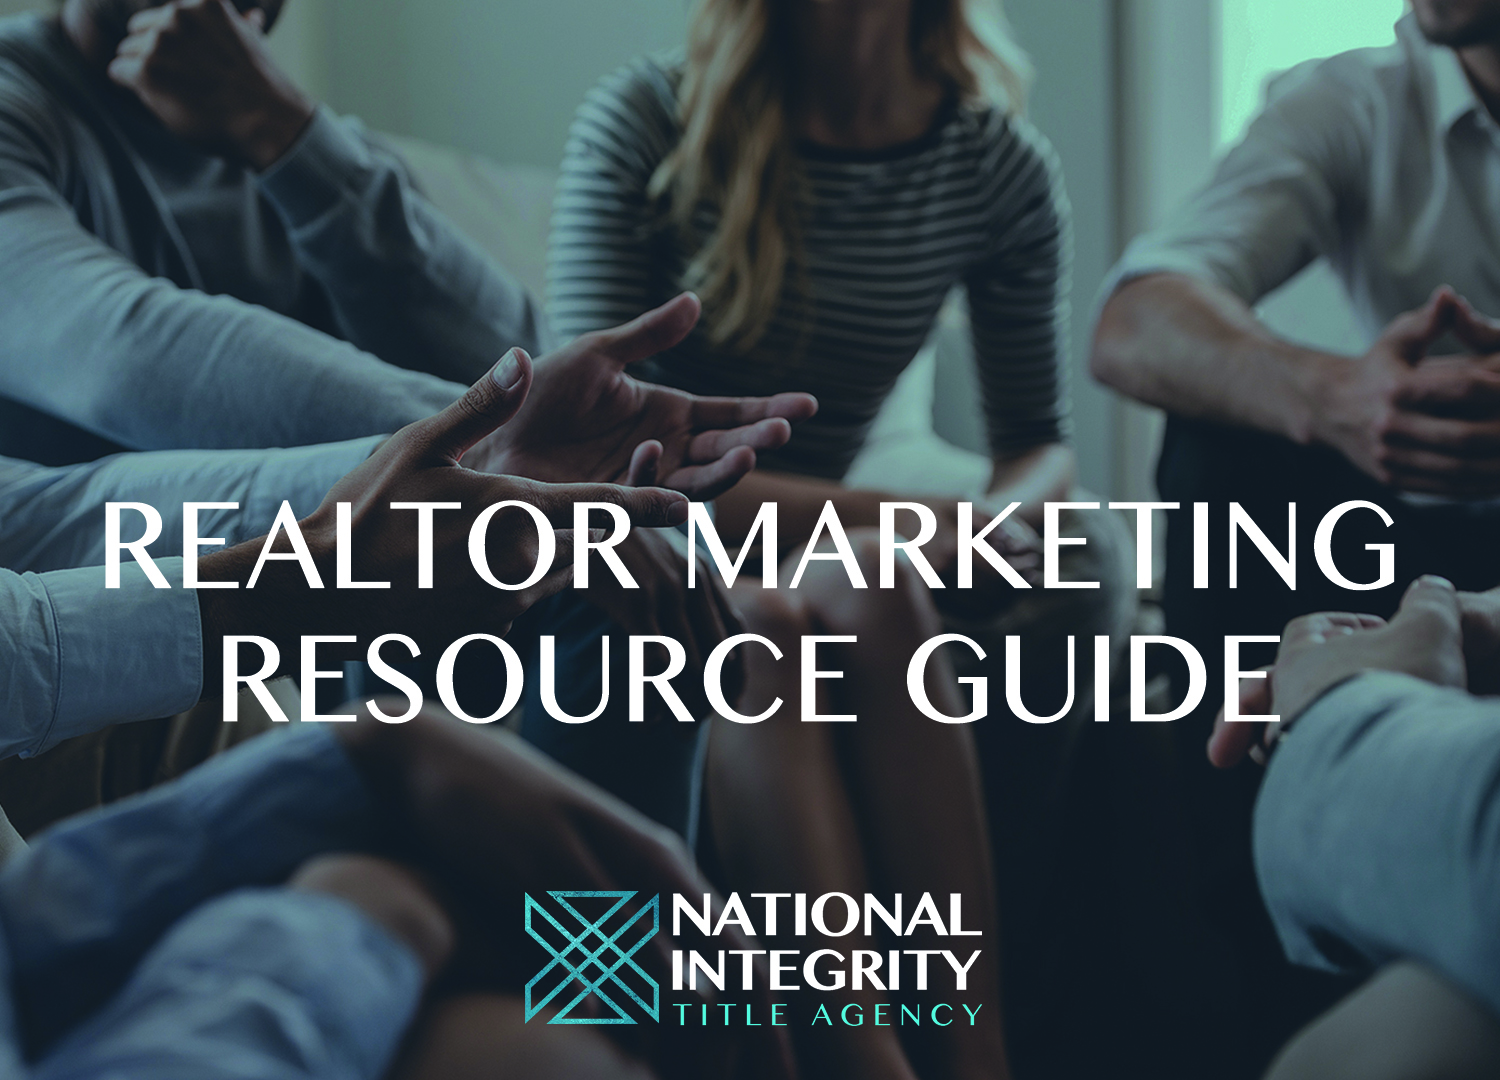 RealtorMarketingResource.jpg